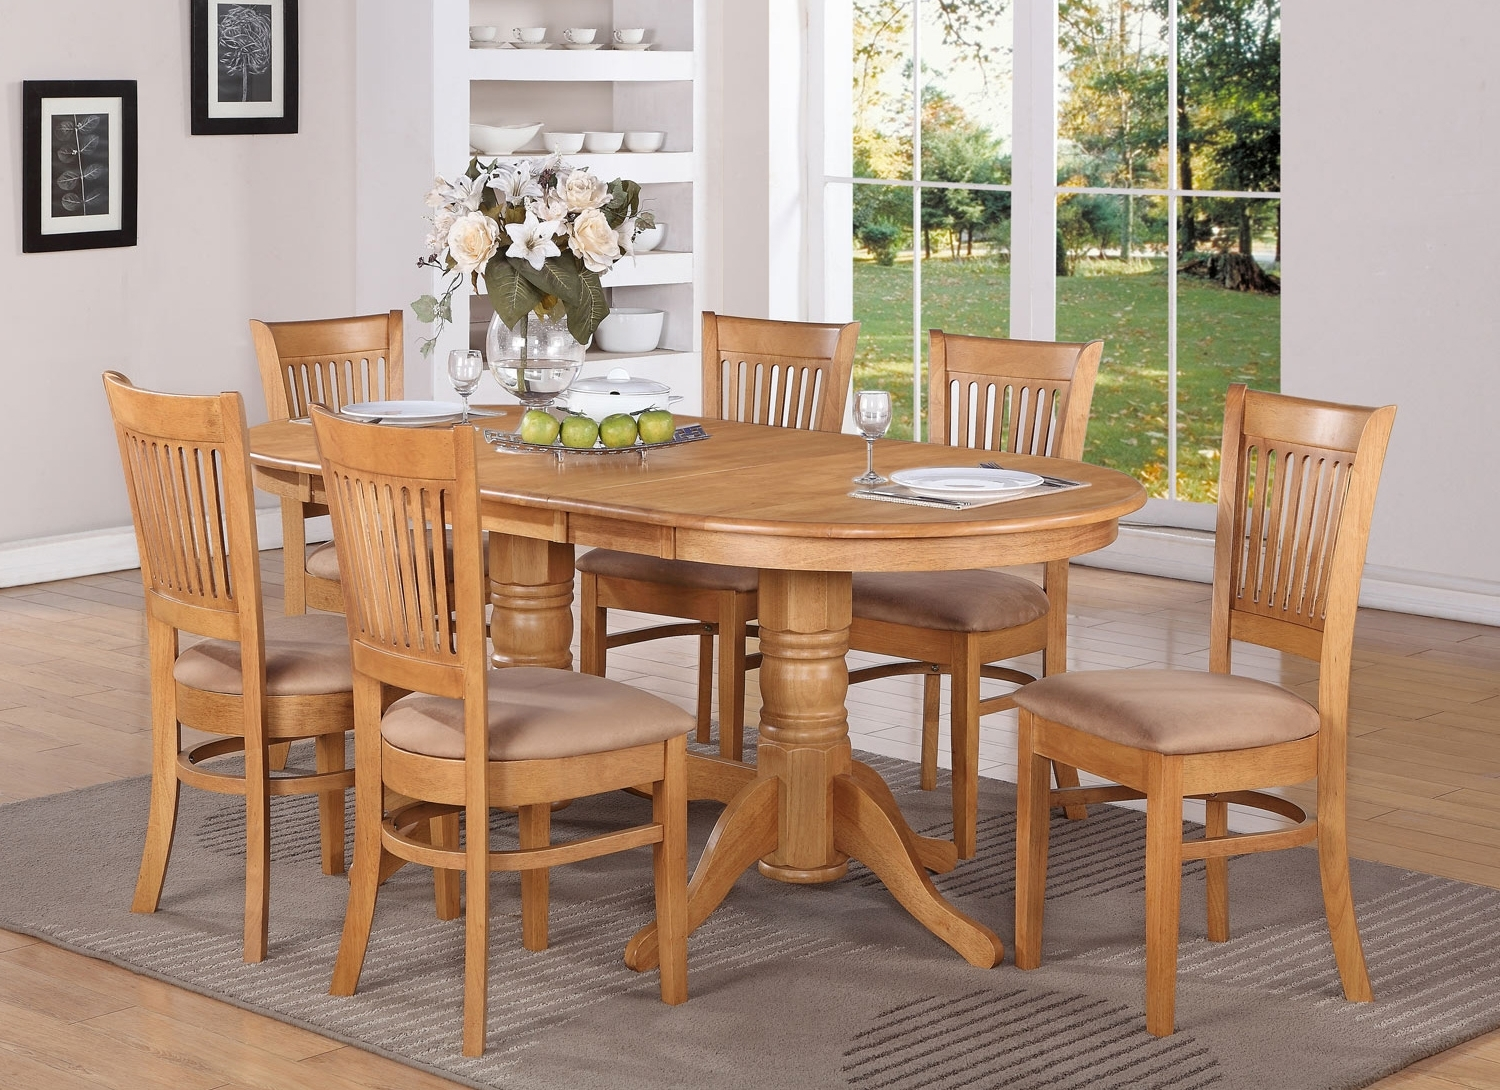 7 Pc Dining Room Set Table With A Leaf And 6 Dining Chairs Intended For Widely Used Light Oak Dining Tables And 6 Chairs (View 9 of 25)